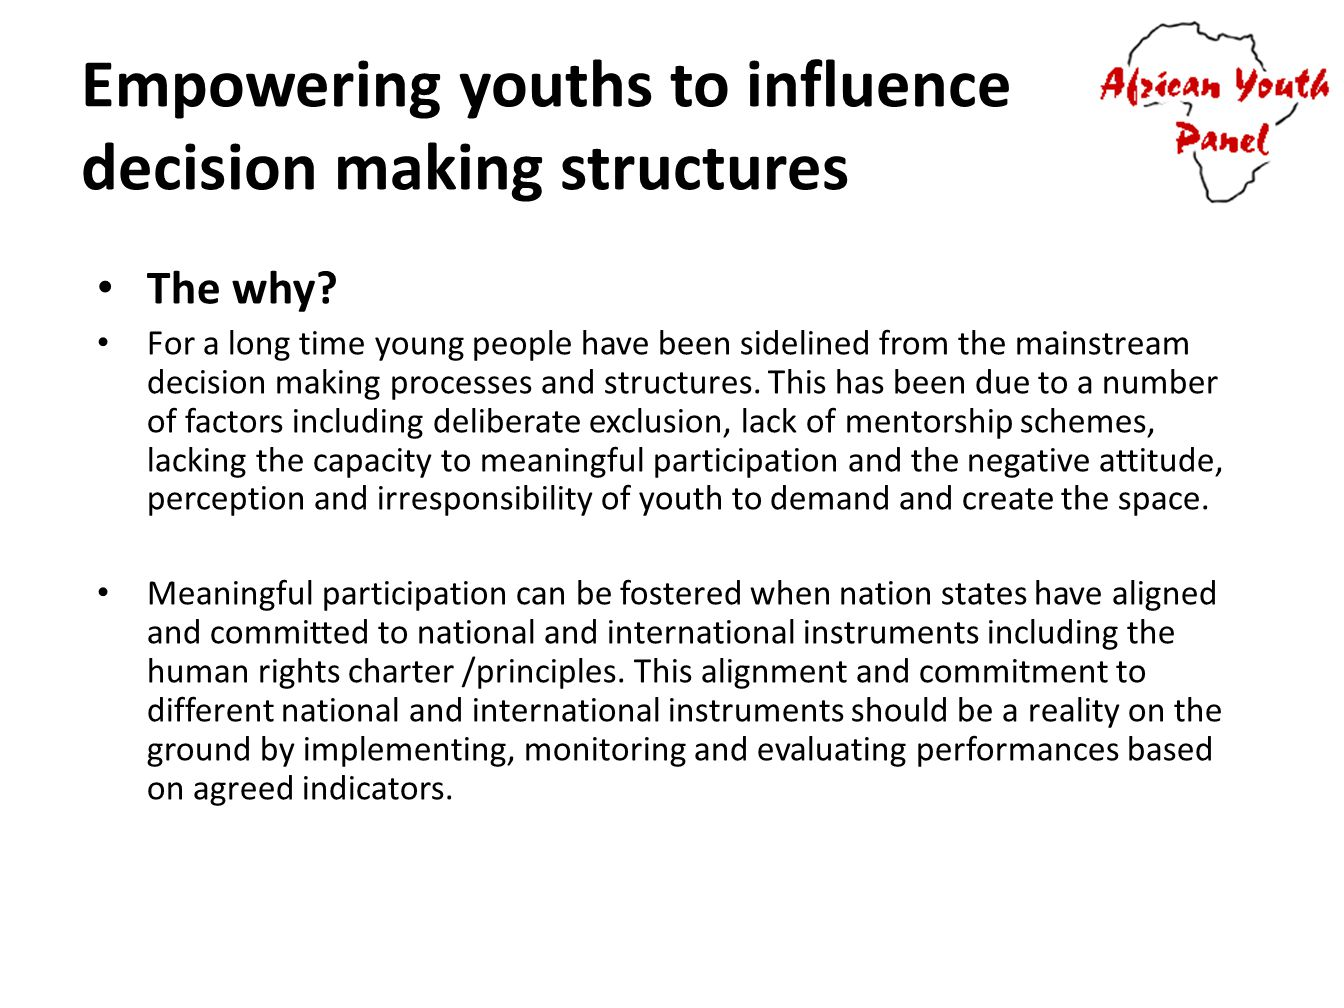 Empowering youths to influence decision making structures